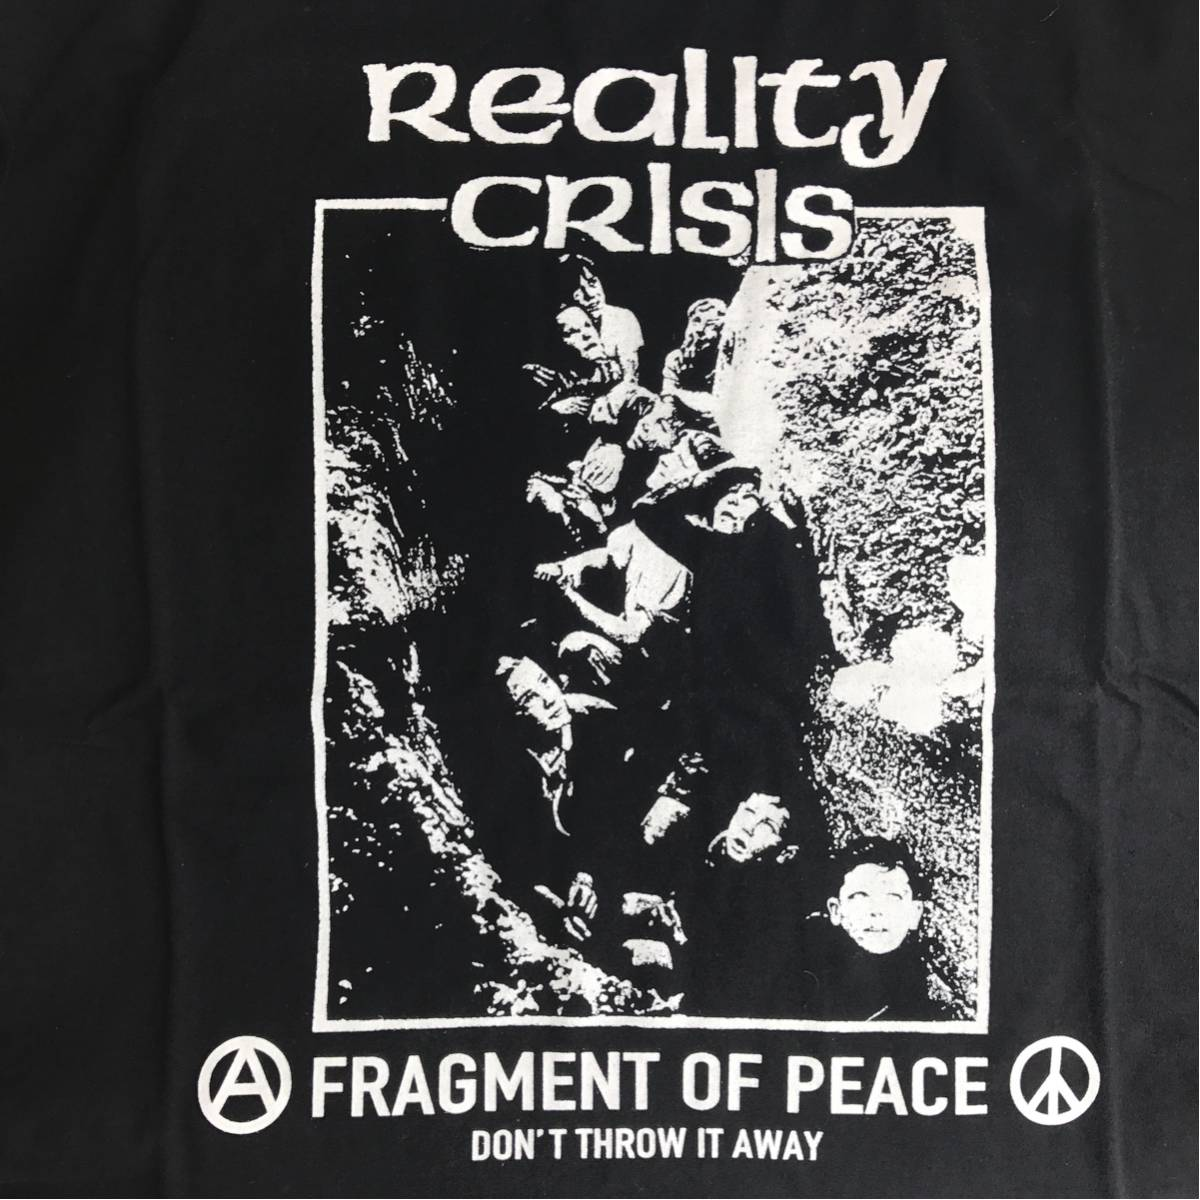 REALITY CRISIS OLEDICKFOGGY Discharge. disclose gism gauze doom undercover crass. Meaning slang BRAHMAN Tシャツ